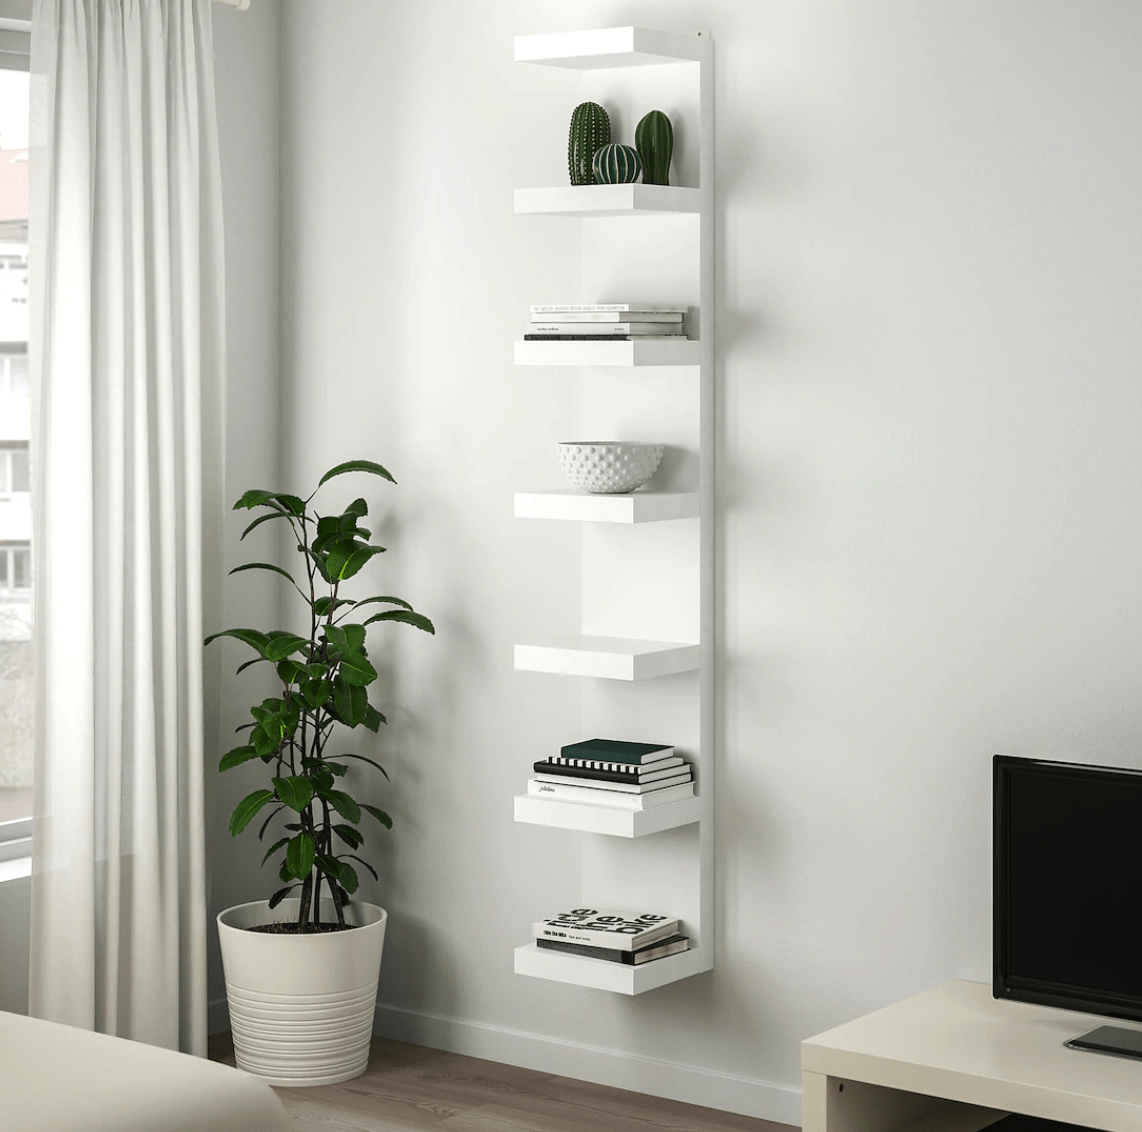 Ikea's LACK Wall Shelf Unit